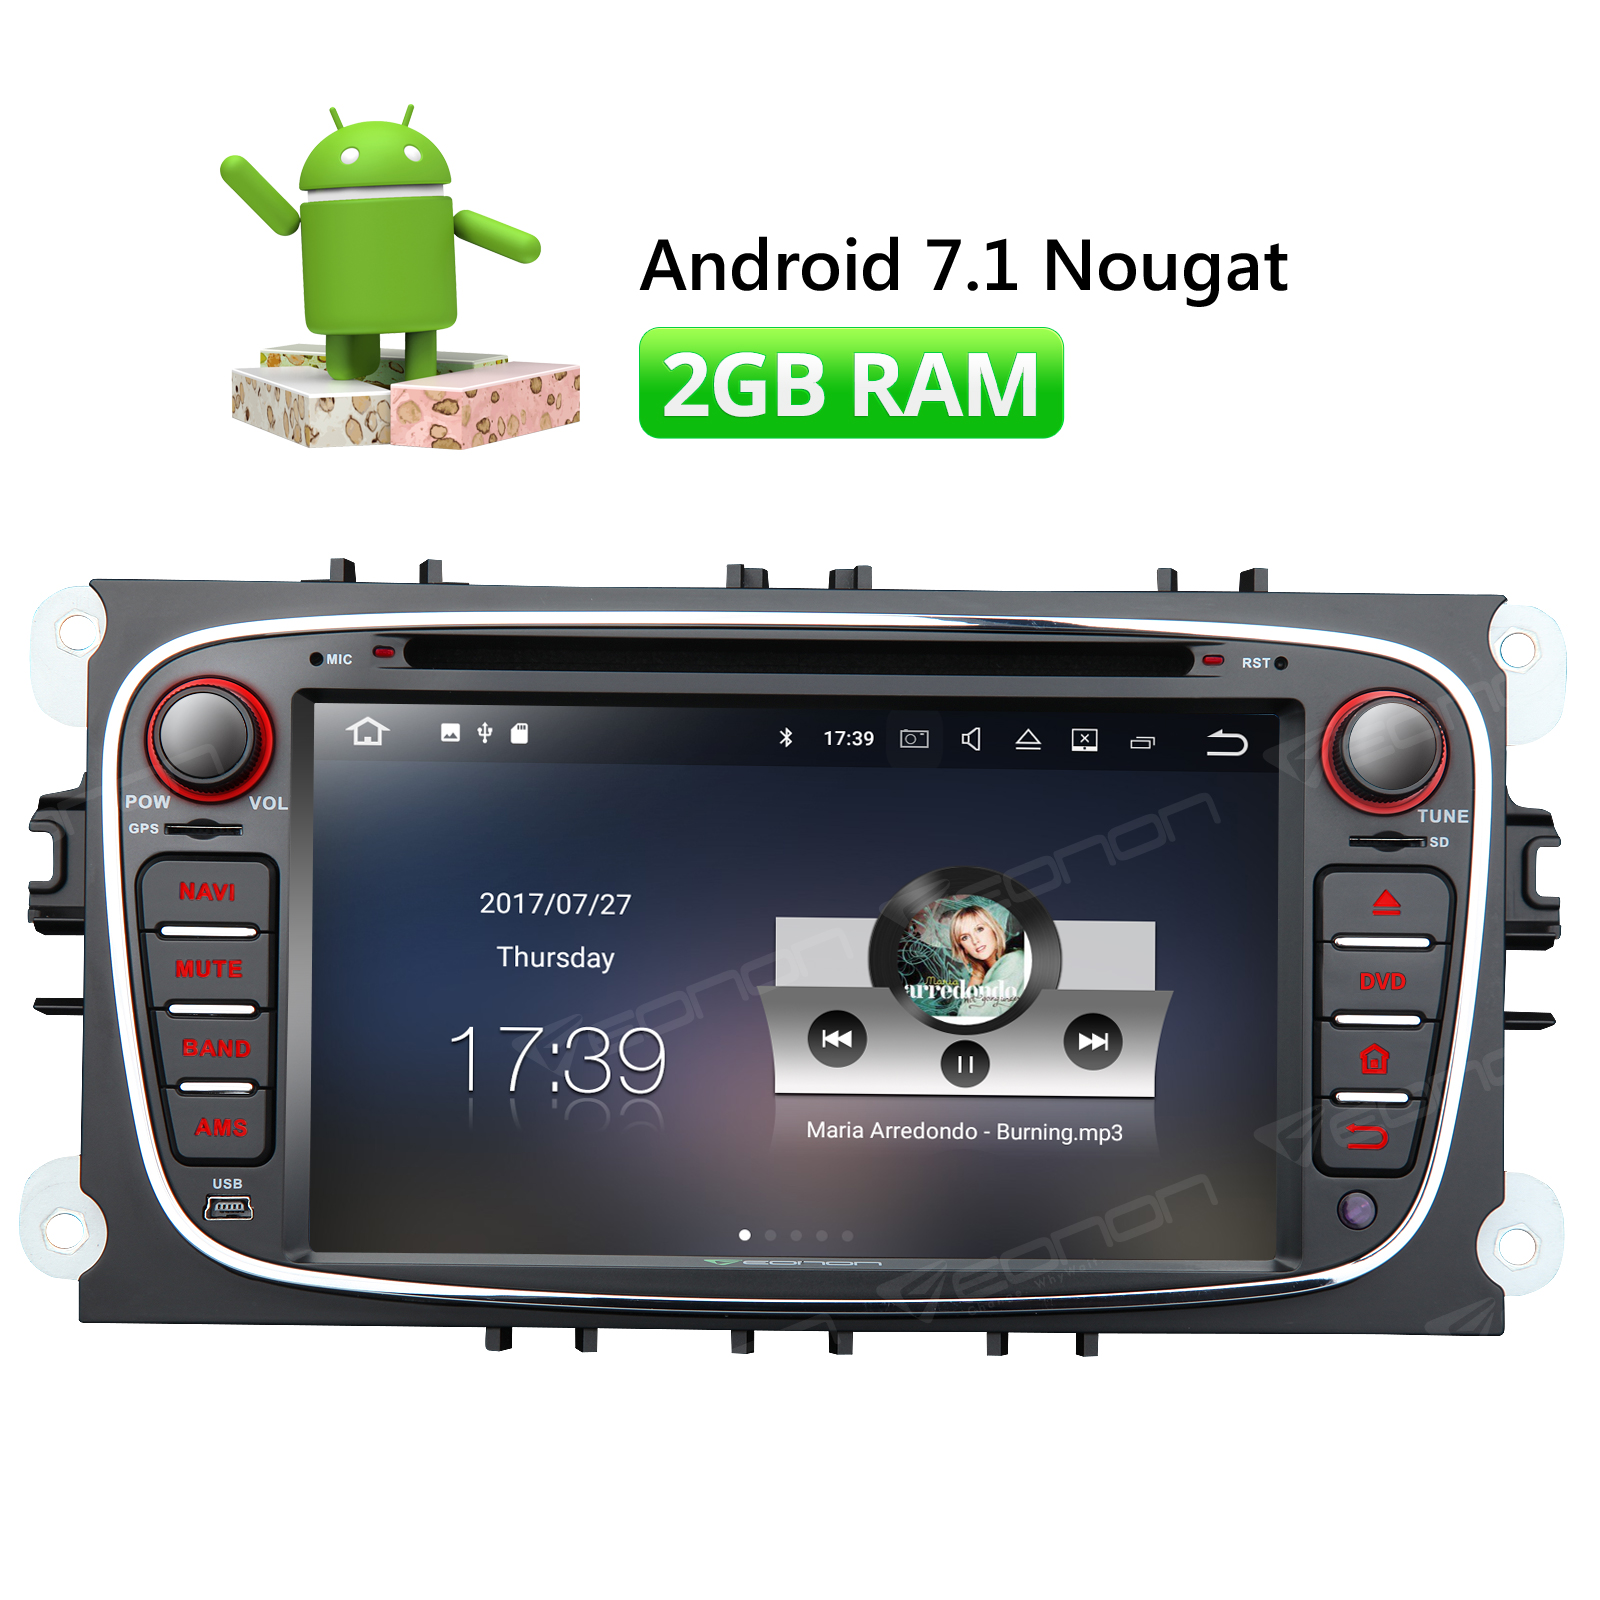 Eonon GA8162 7 Android 7.1 Car Stereo DVD GPS Tracker For Ford Mondeo Focus S-Max Touch Screen 1024*600 WiFi DAB+ SAT